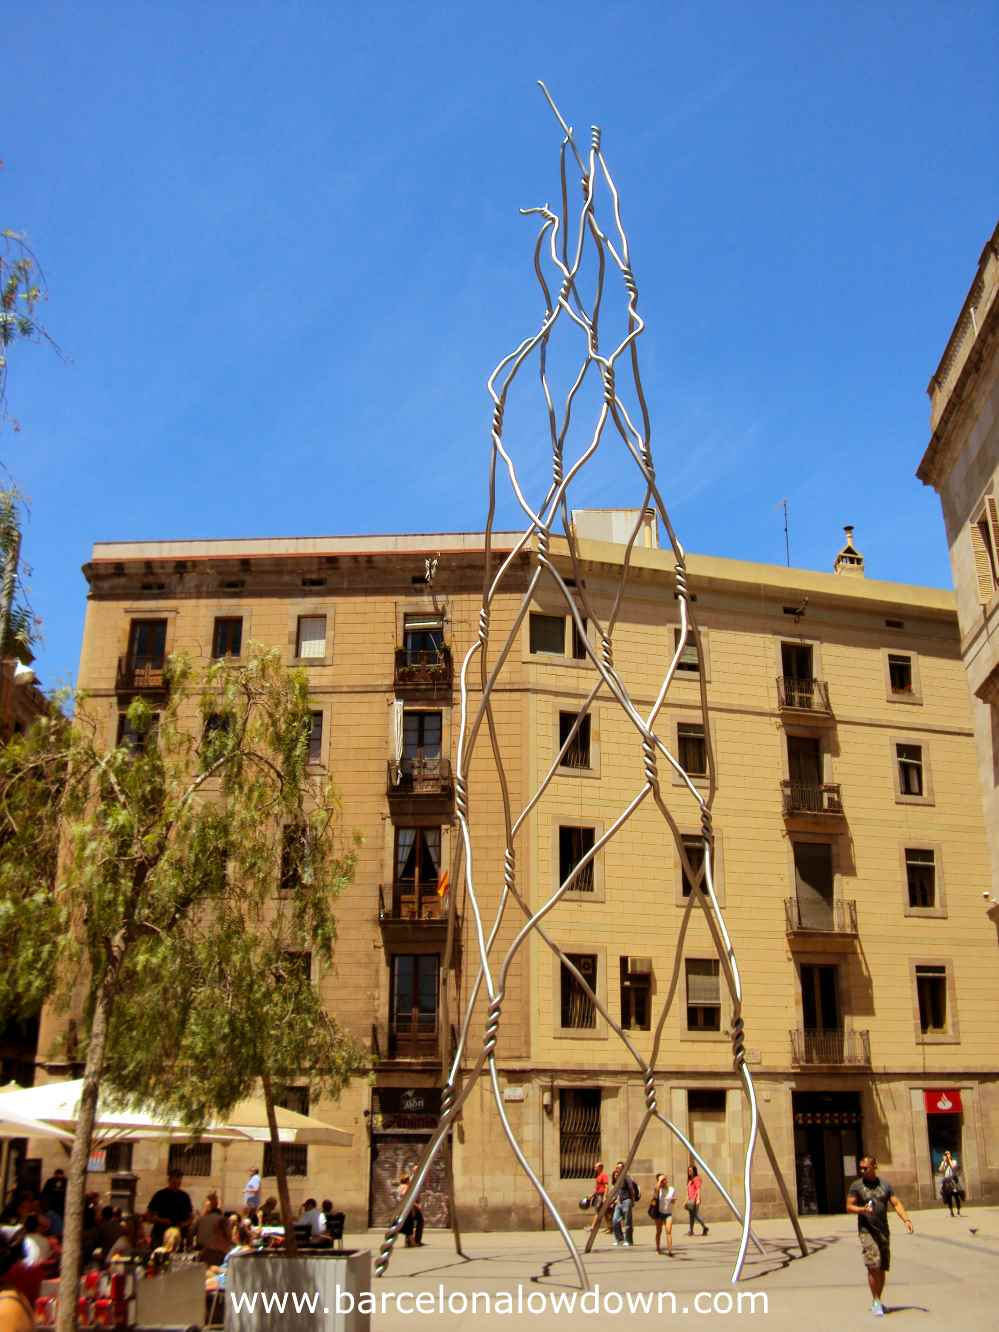 The giant chickenwire statue in Barcelona's Gothic Quarter